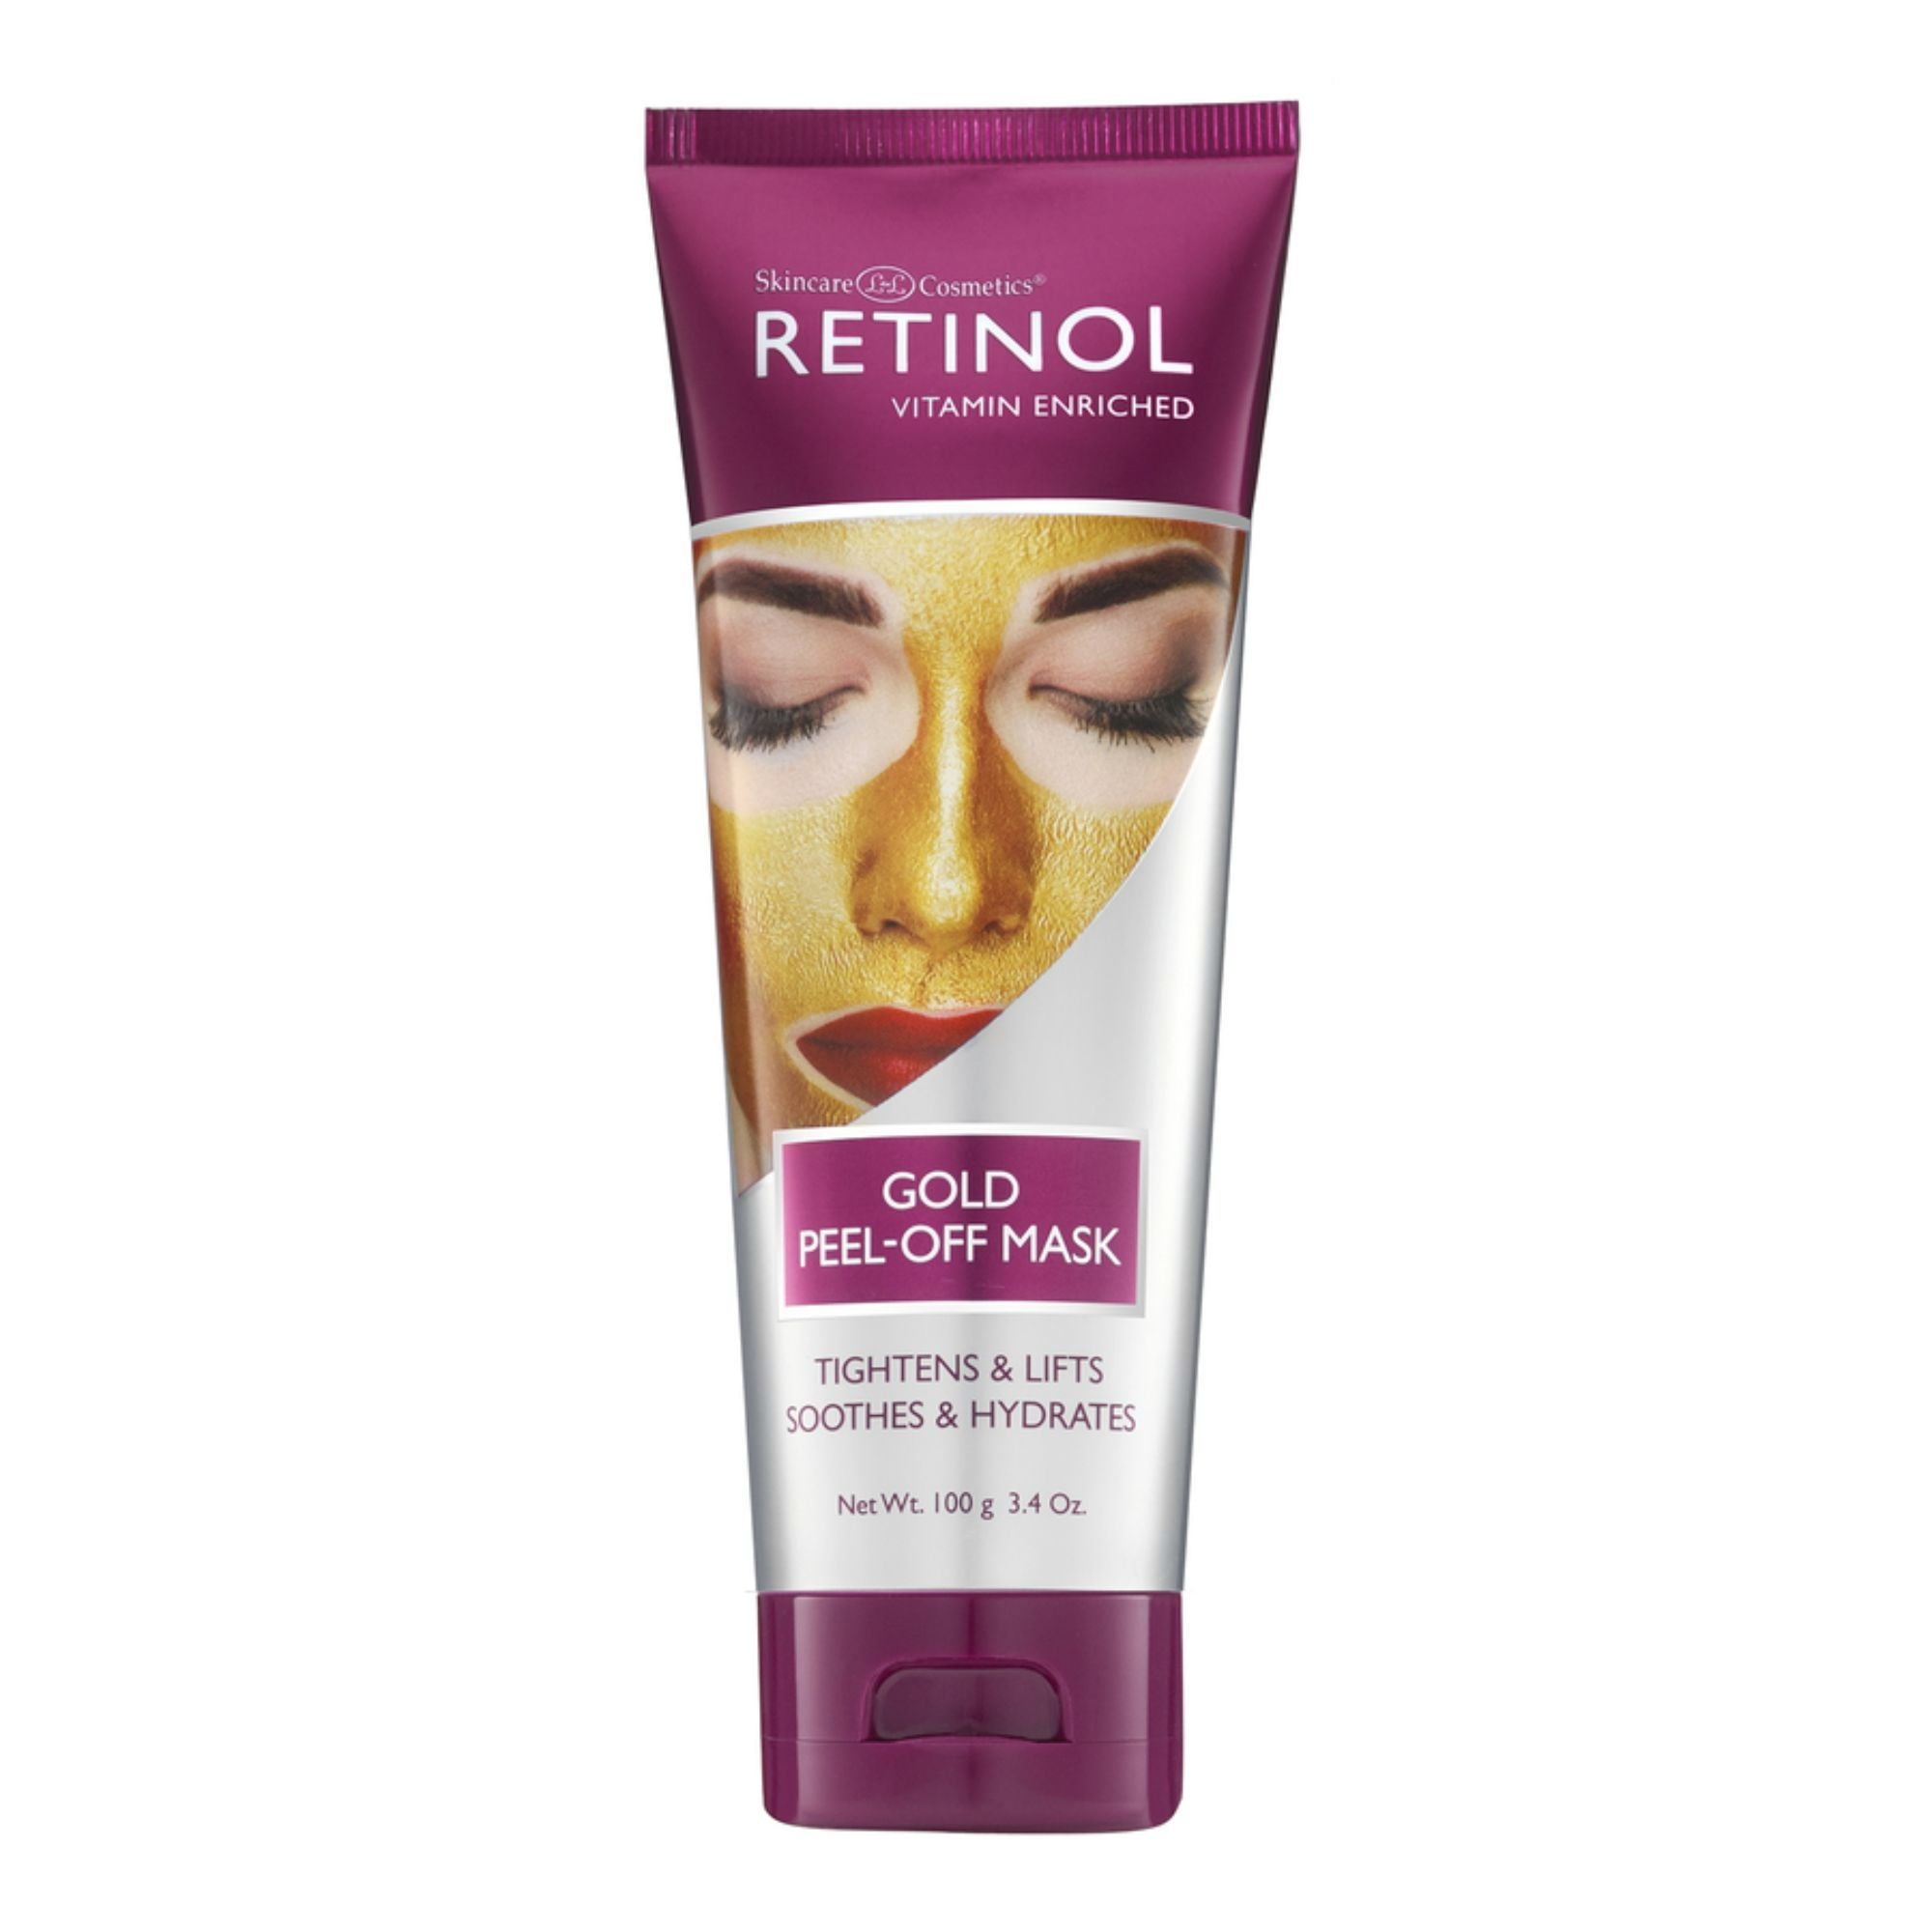 Gold Peel-Off Mask